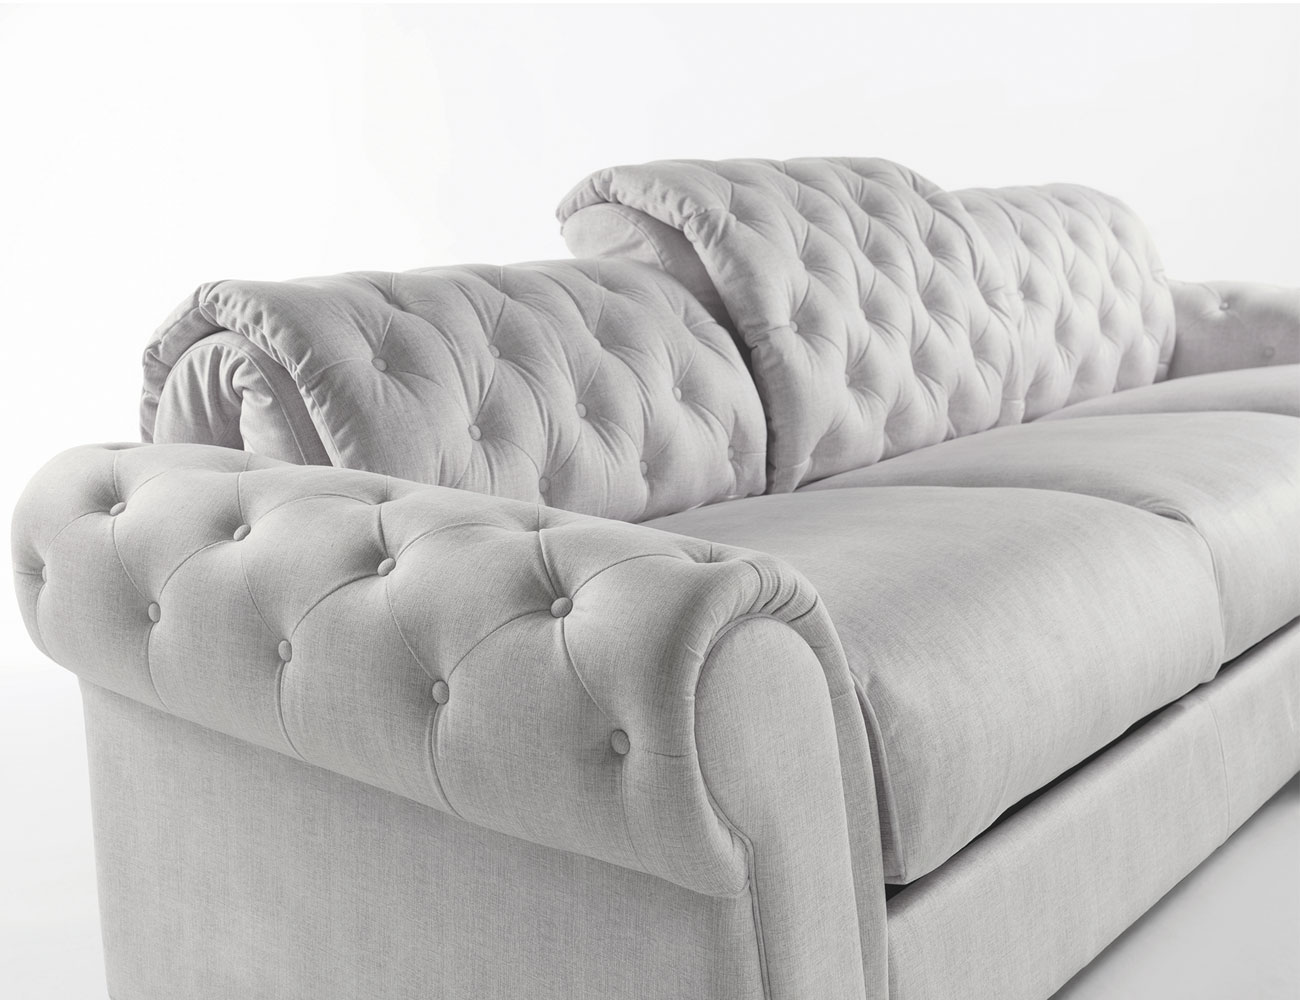 Sofa chaiselongue gran lujo decorativo capitone blanco tela 159